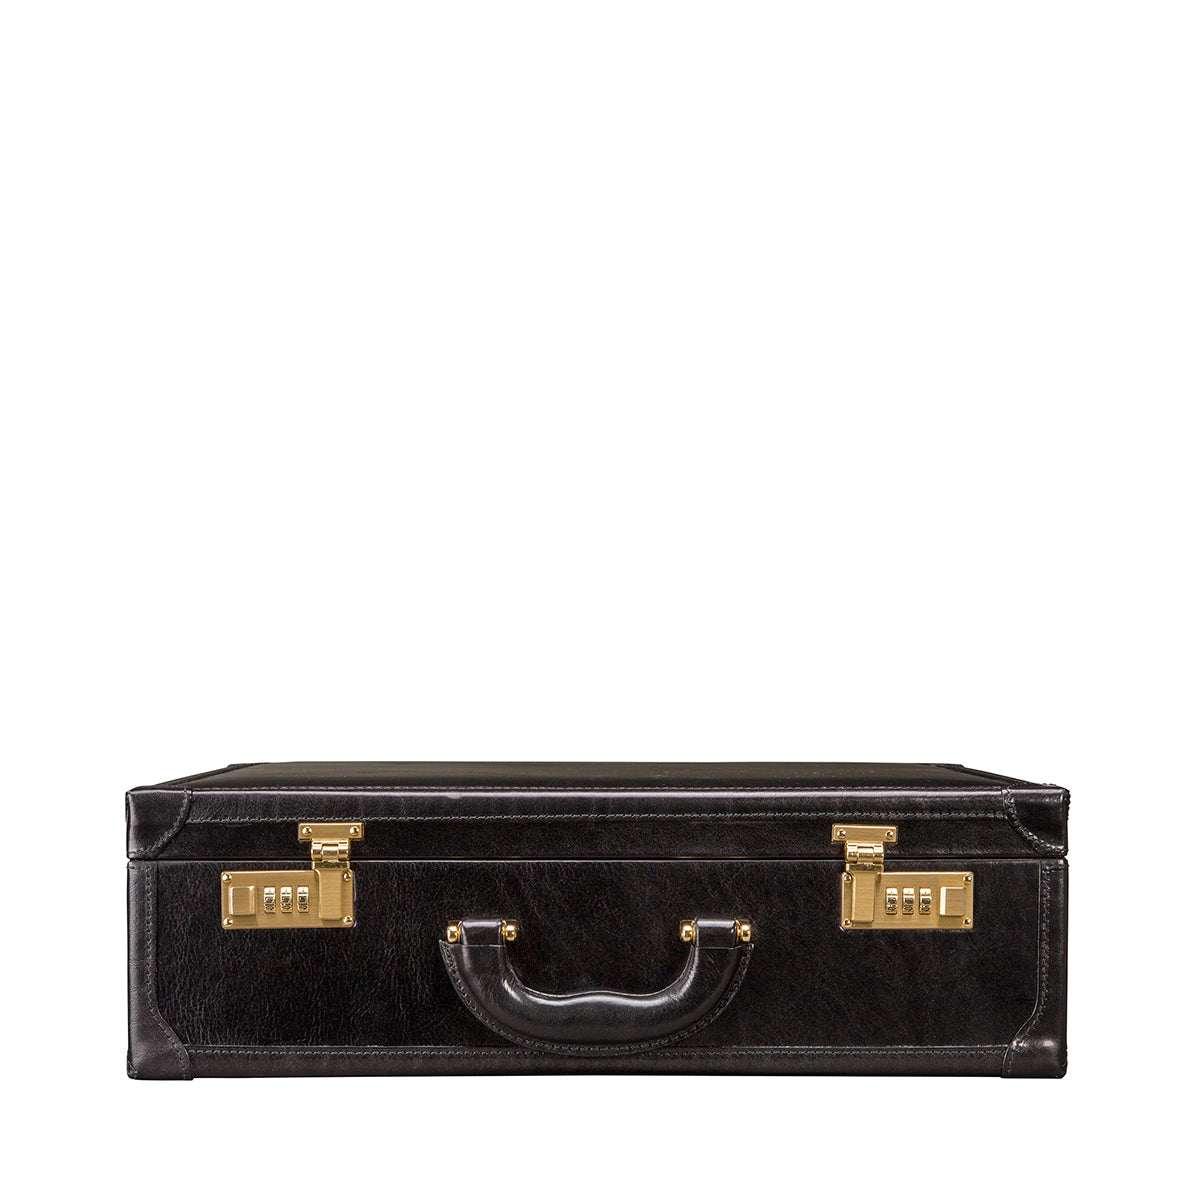 Image 4 of the 'Buroni' Black Veg-Tanned Leather Business Attaché  Case